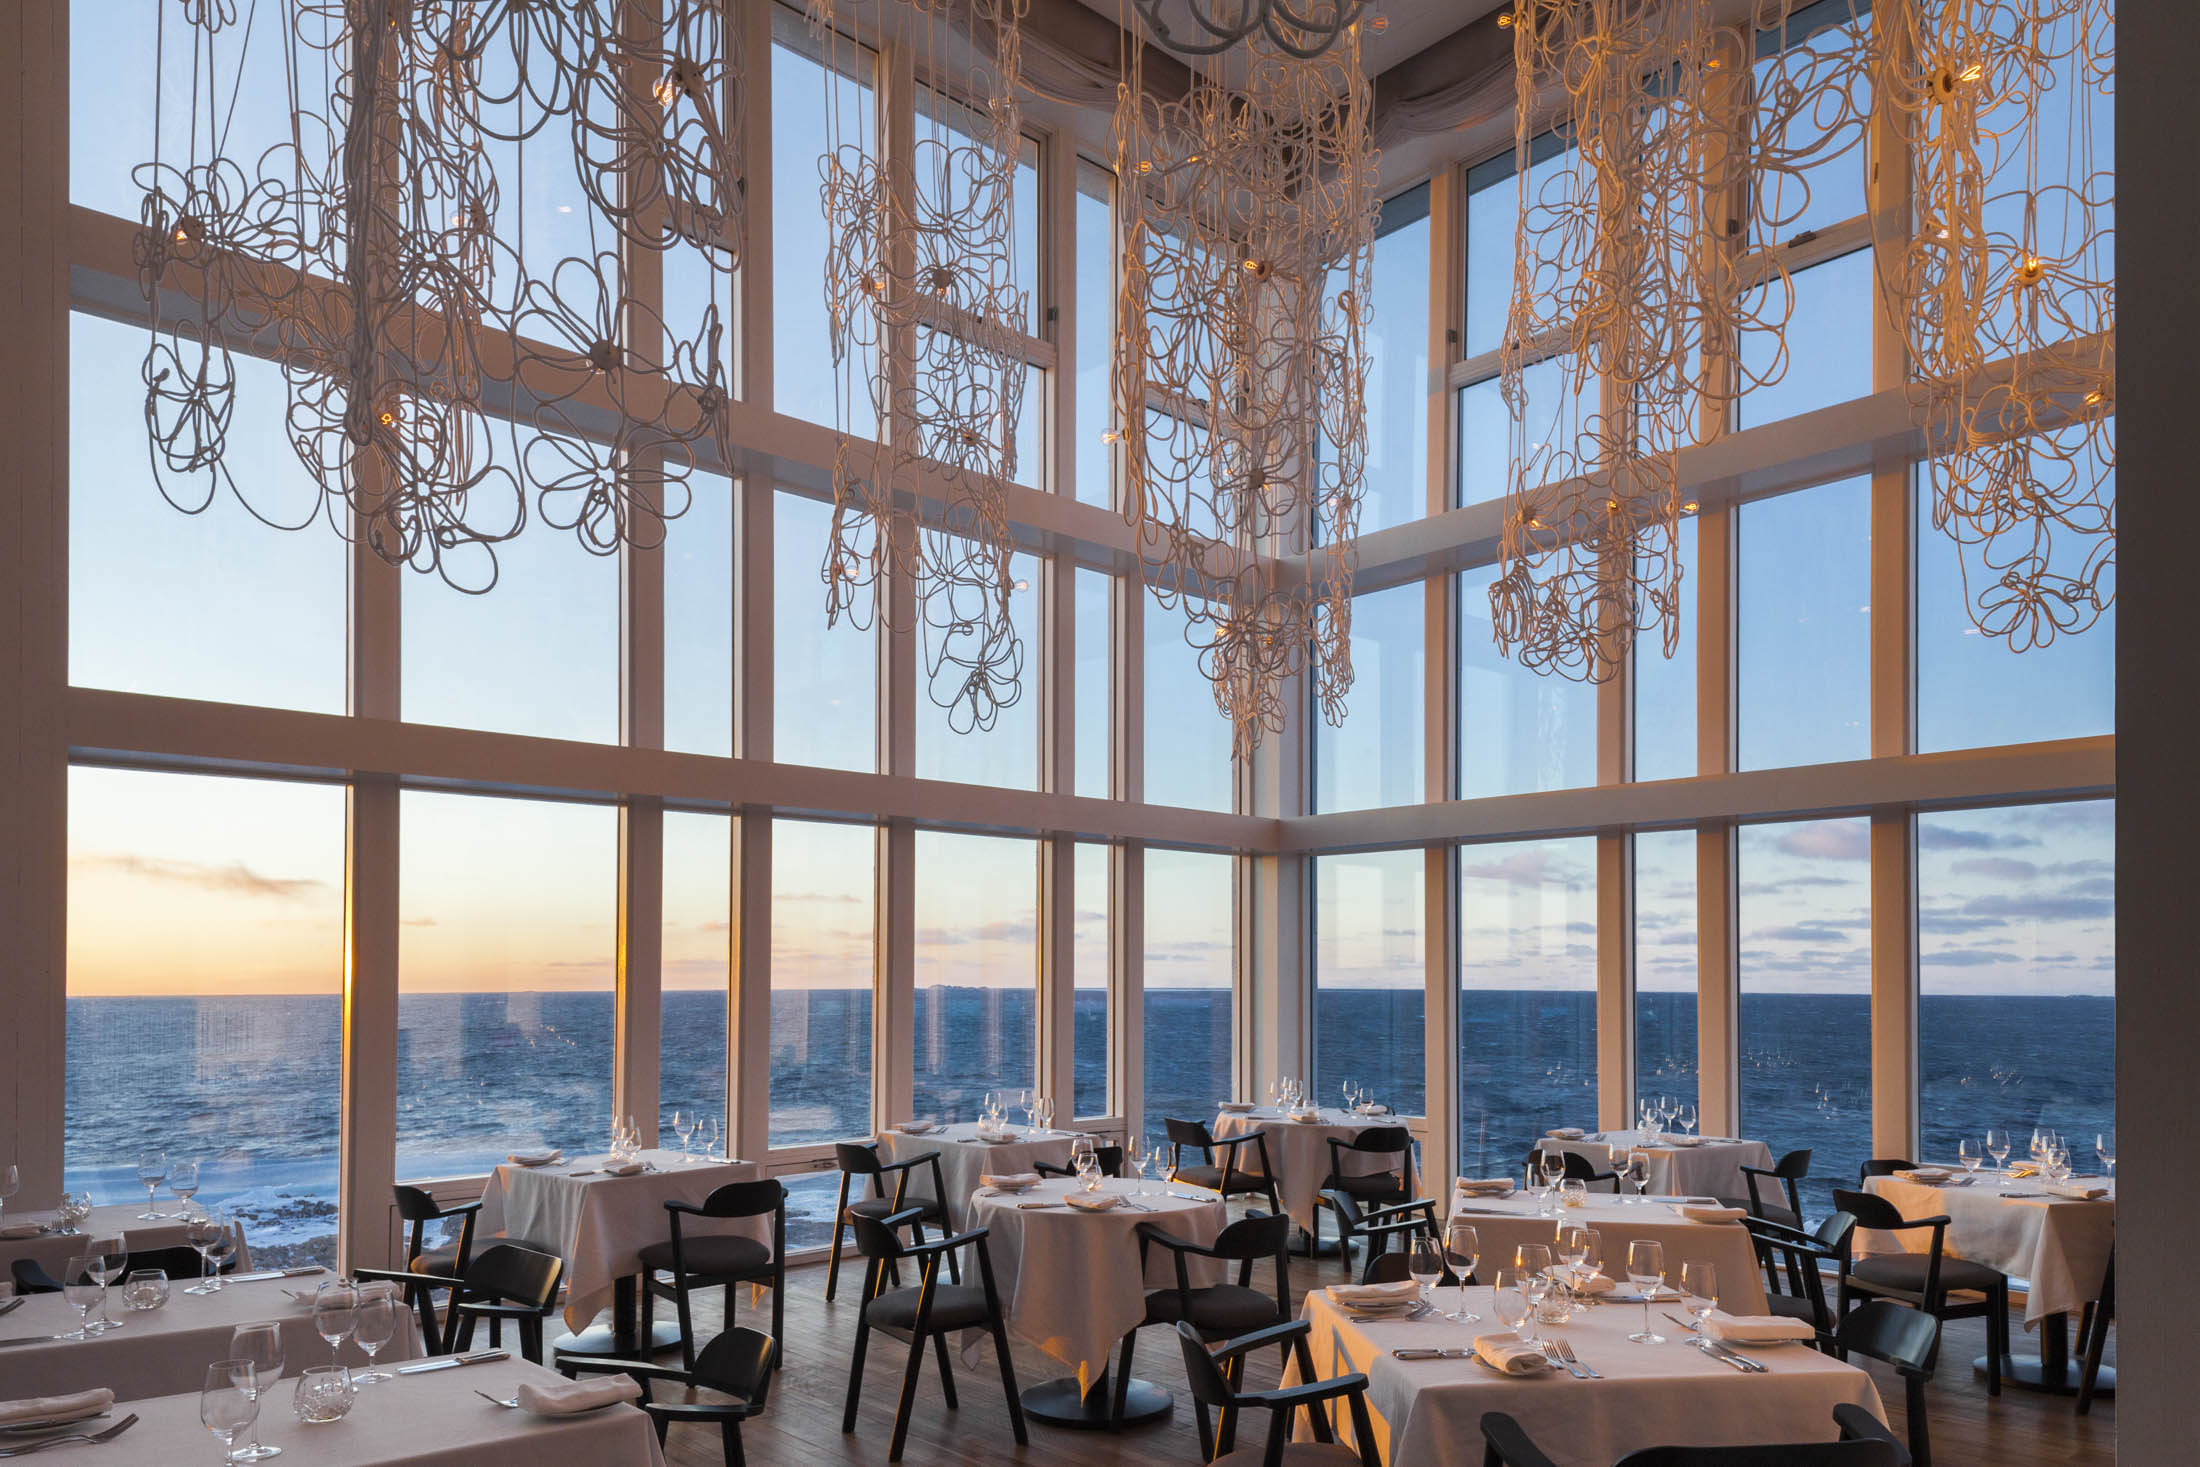 The view from the restaurant at Fogo Island Inn